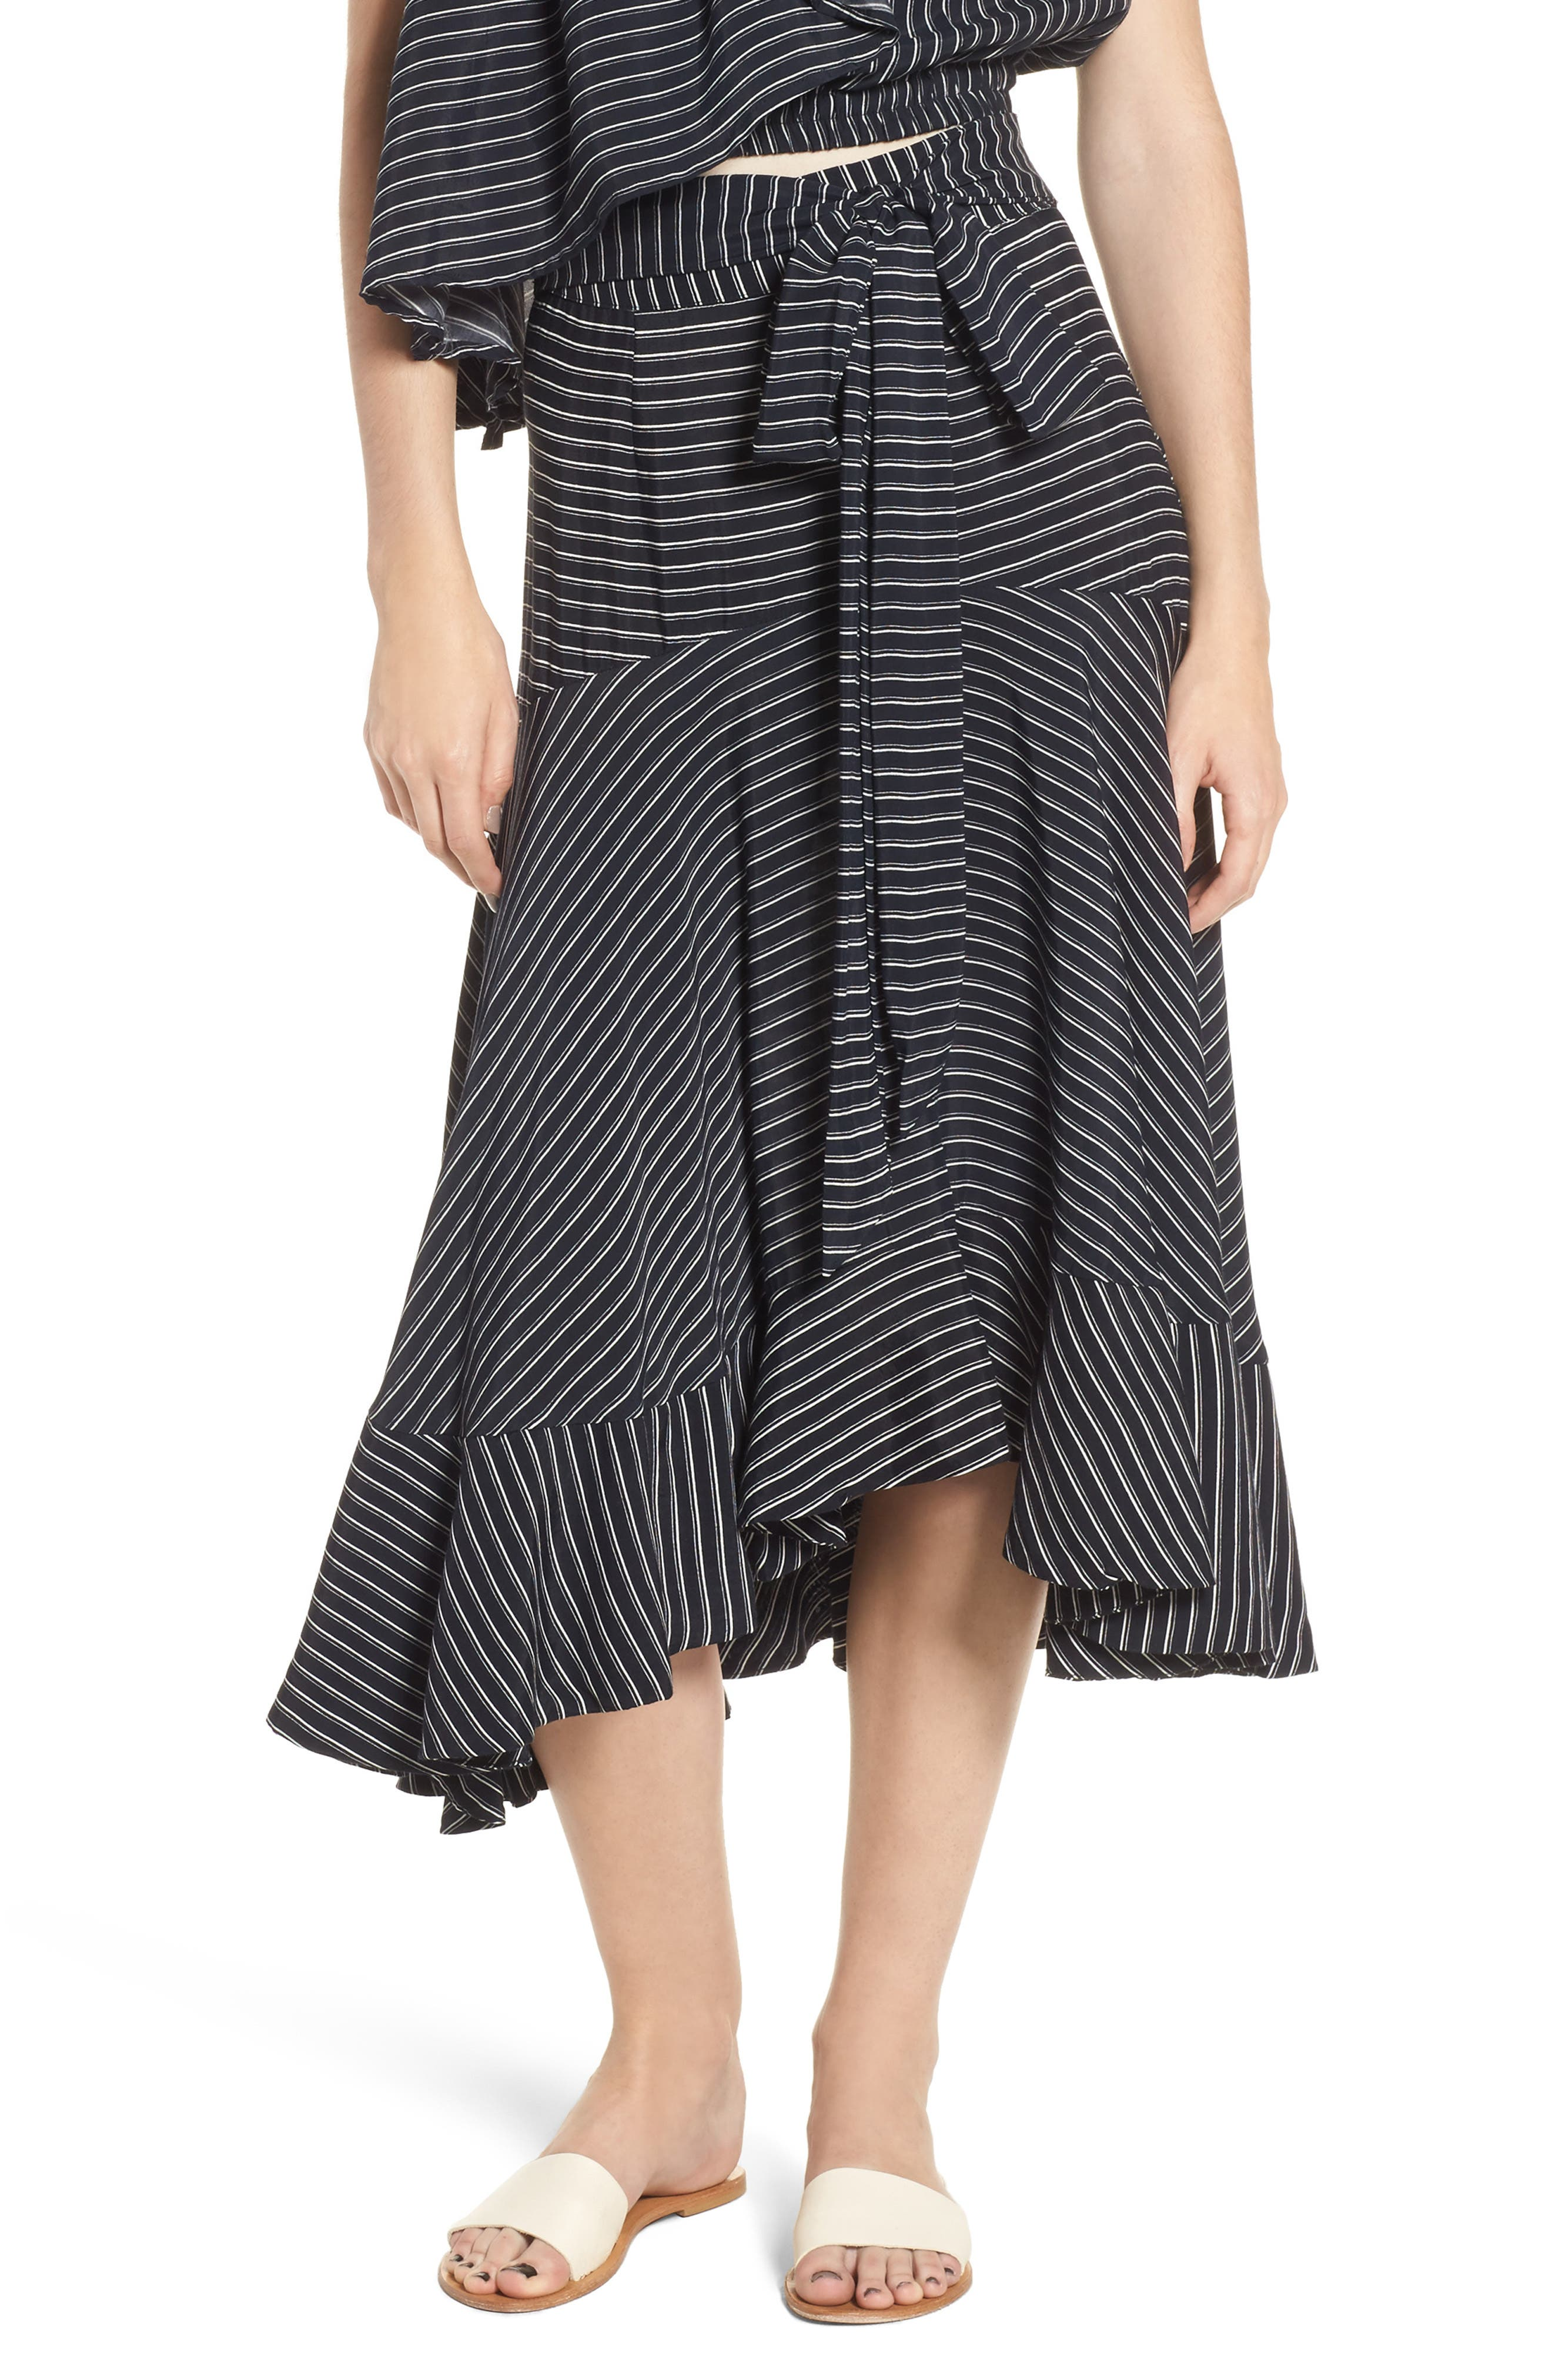 Kamares Ruffle Midi Skirt,                             Main thumbnail 1, color,                             San Cristobal Stripe Print